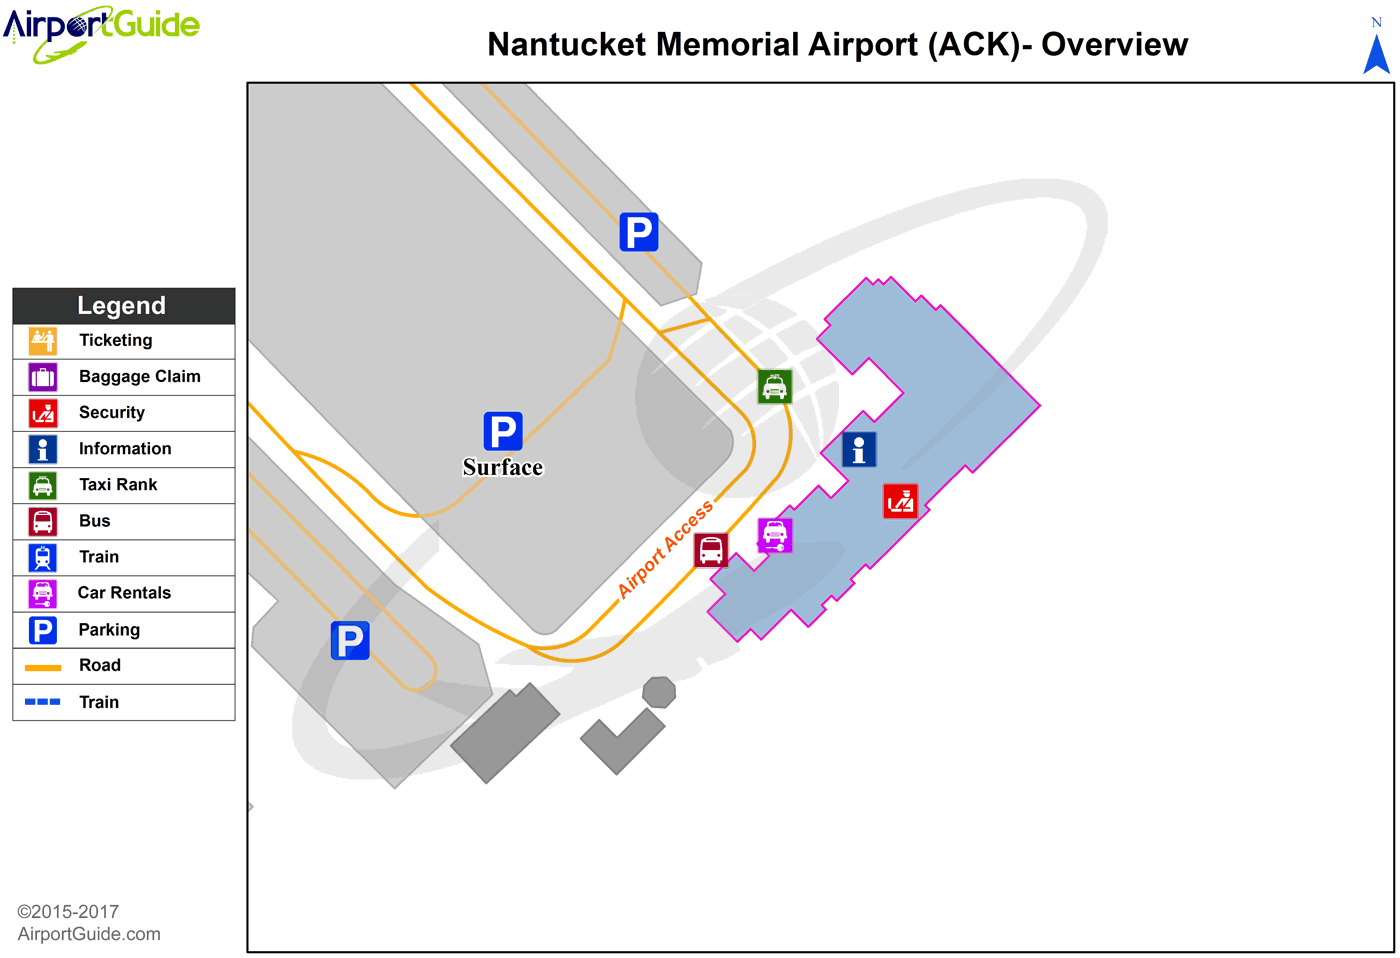 Nantucket - Nantucket Memorial (ACK) Airport Terminal Map - Overview